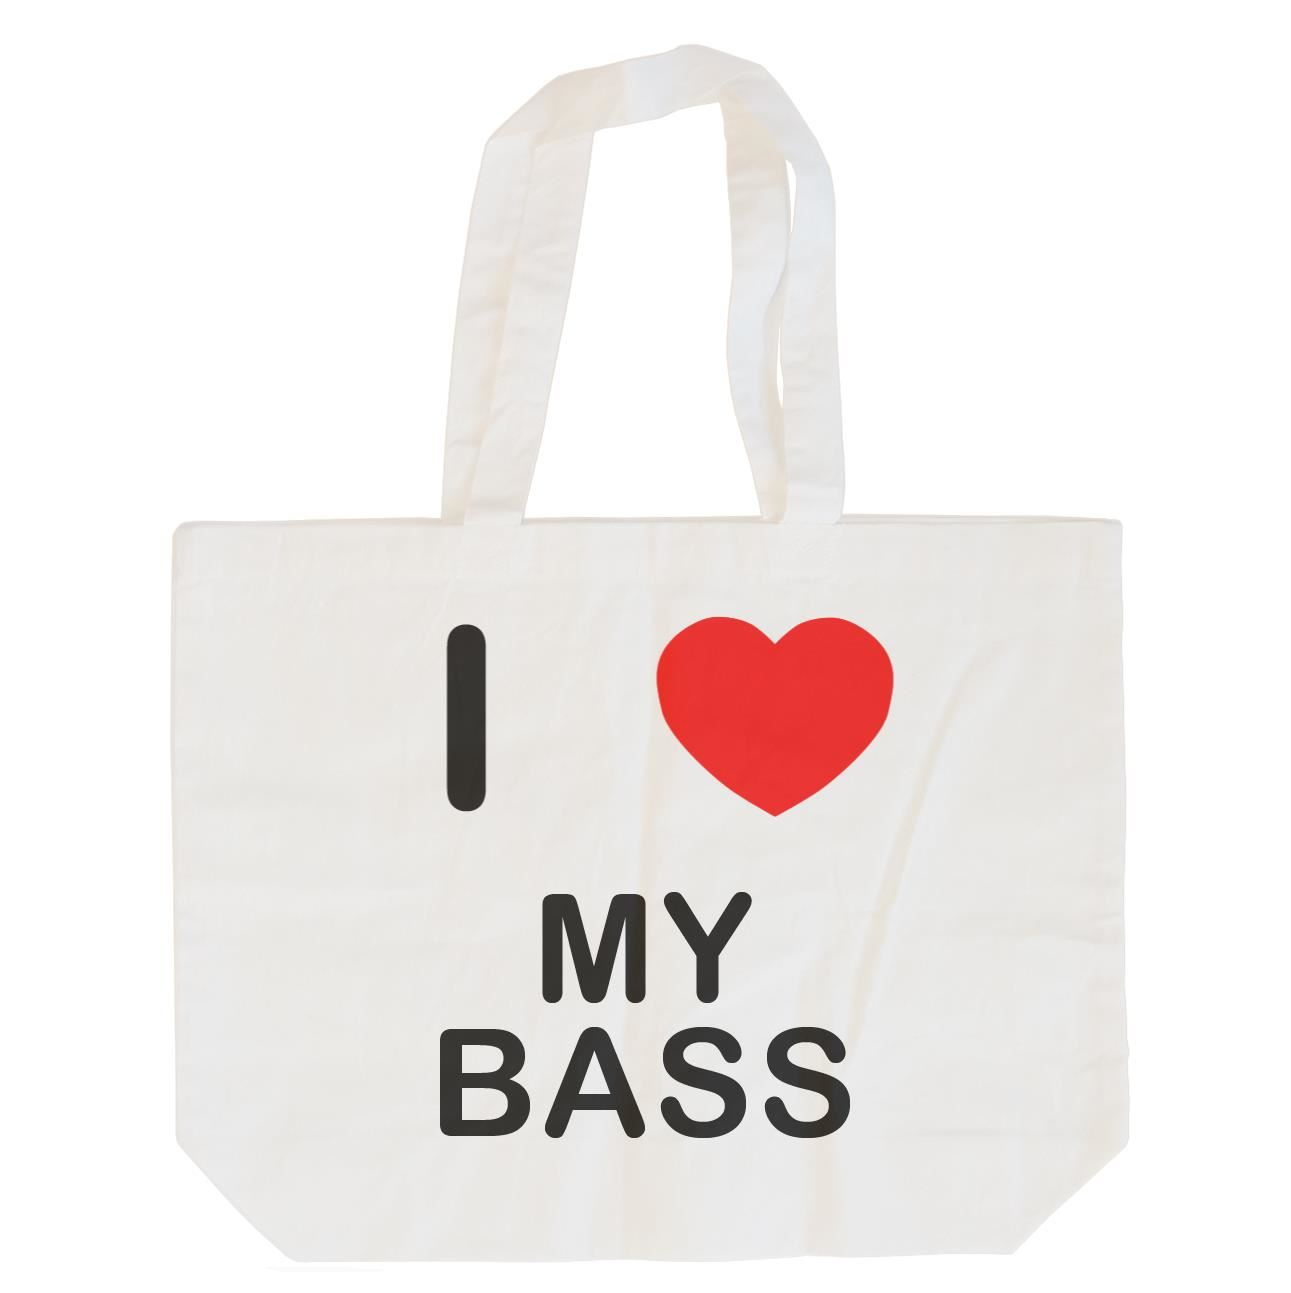 I Love My Bass - Cotton Bag | Size choice Tote, Shopper or Sling